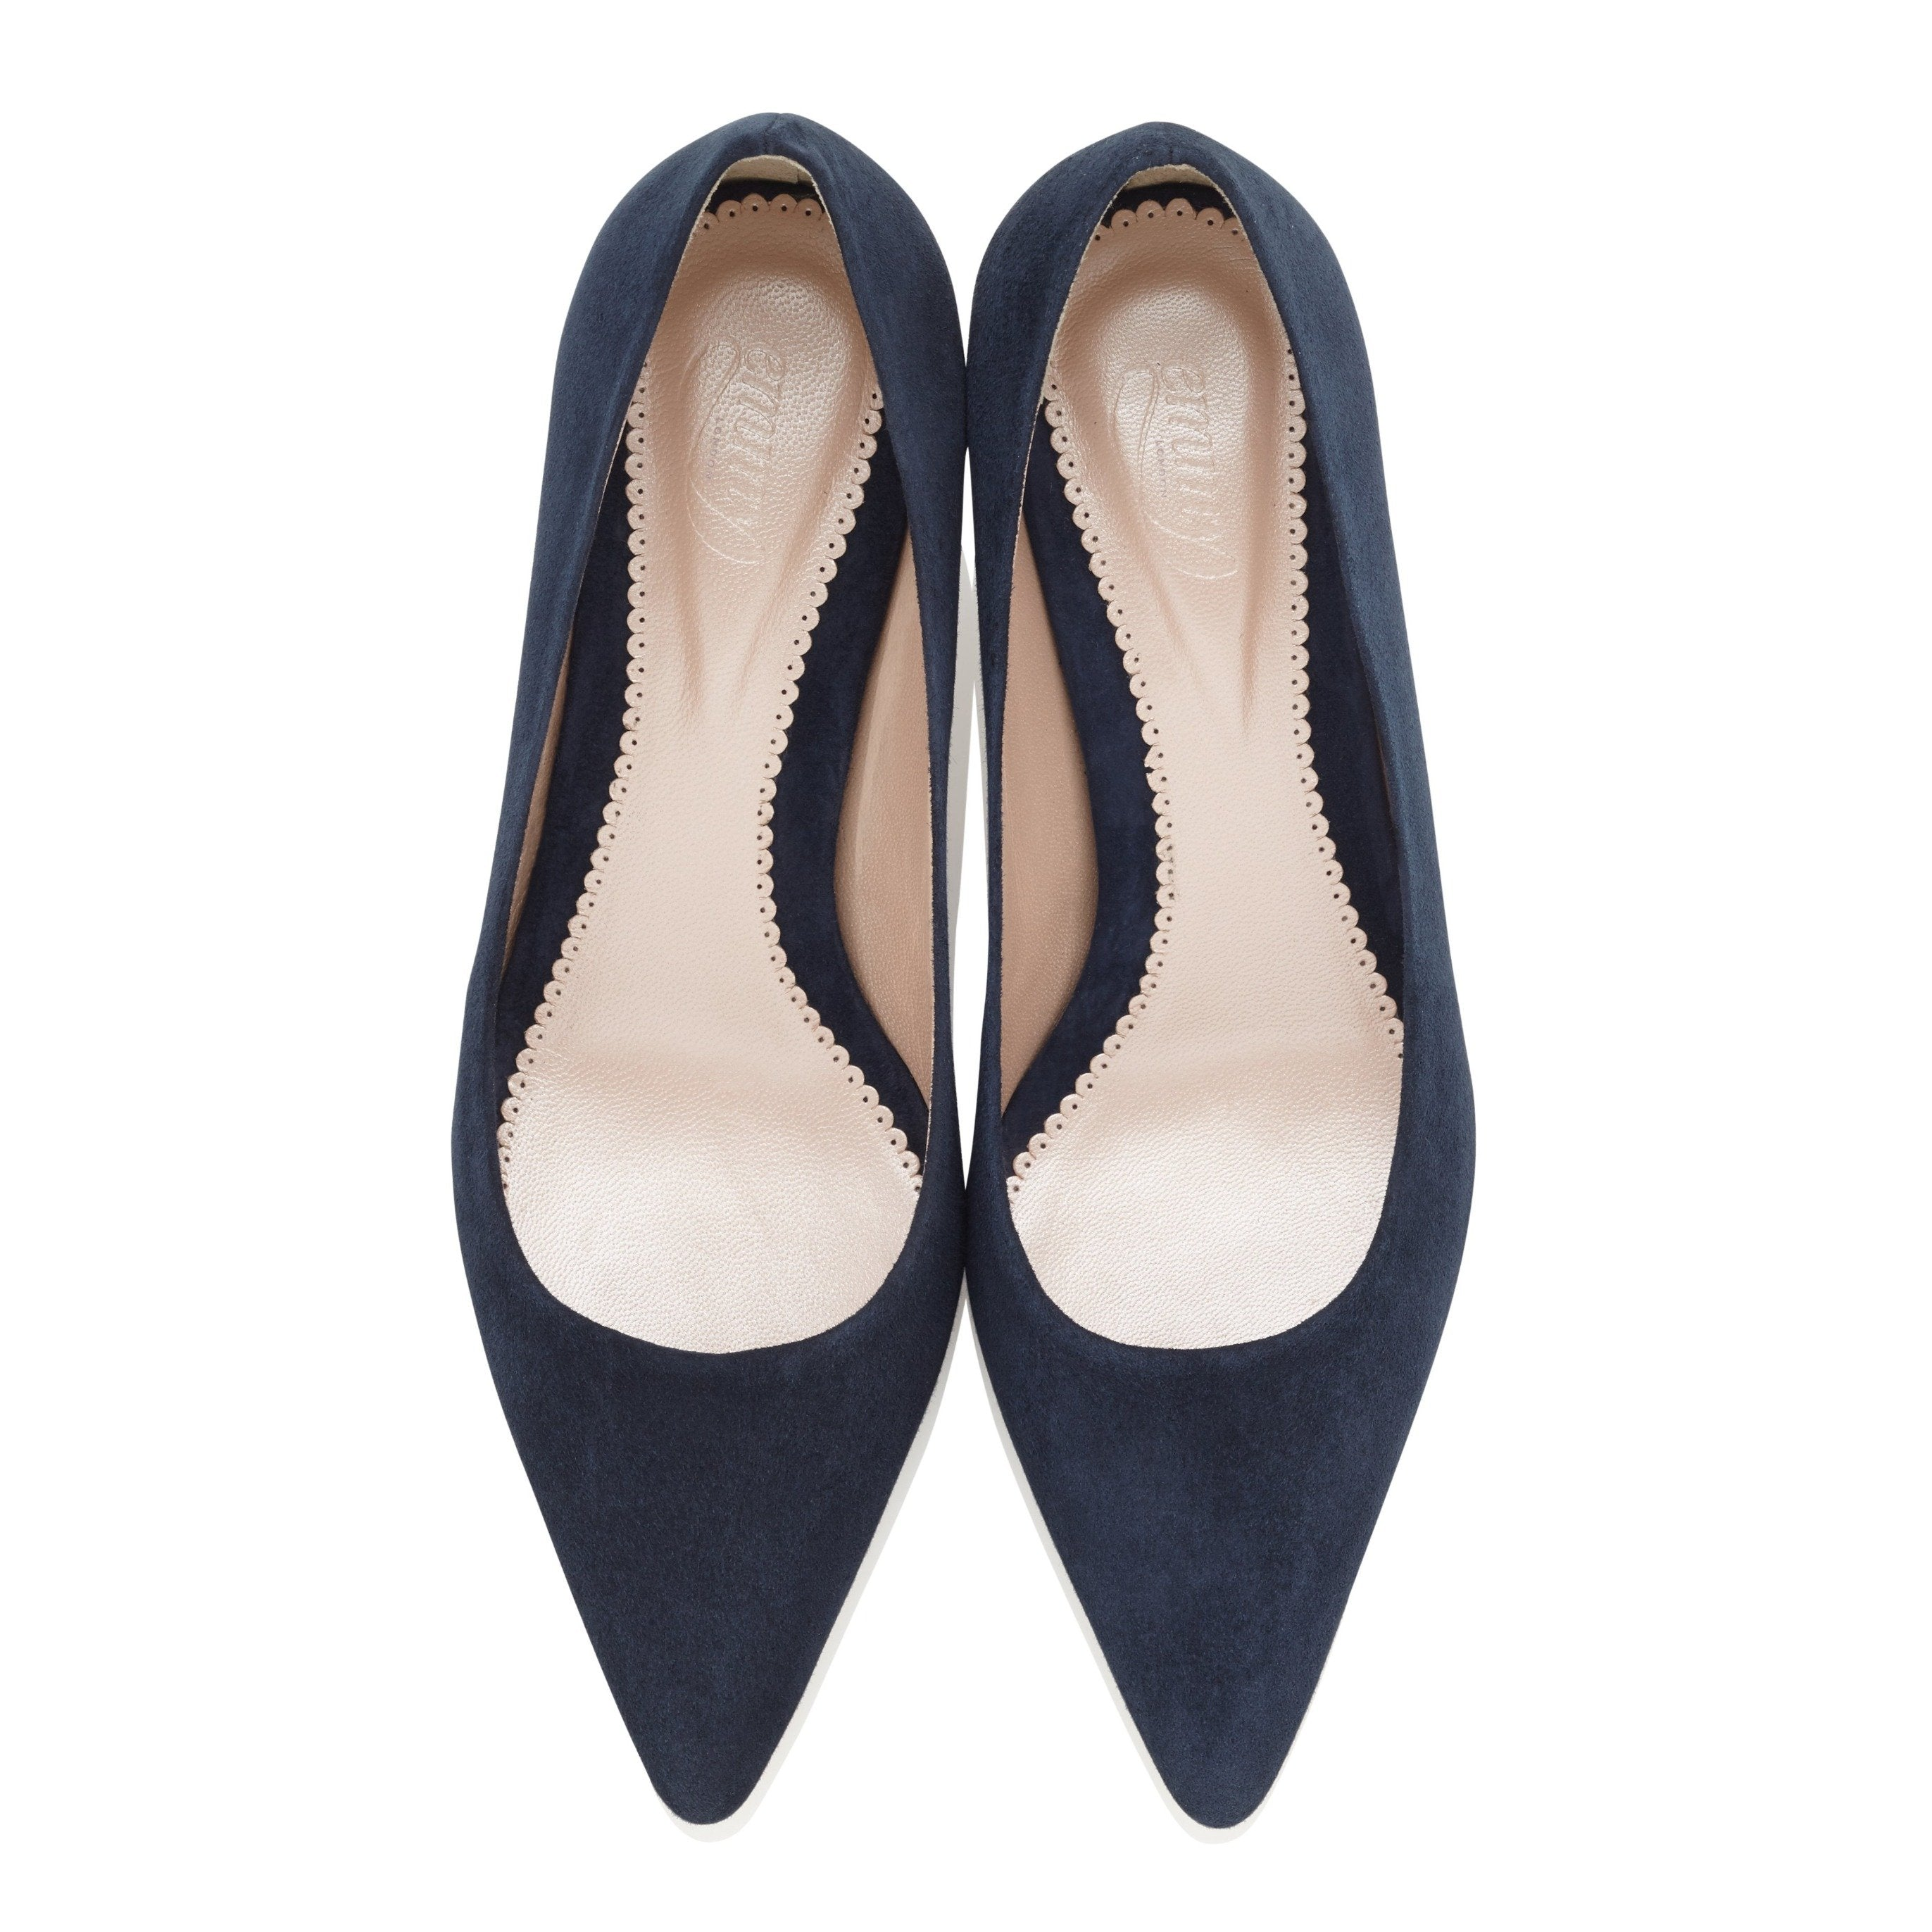 Olivia Kitten Midnight Navy Pointed Kitten Heel Shoes by Emmy London